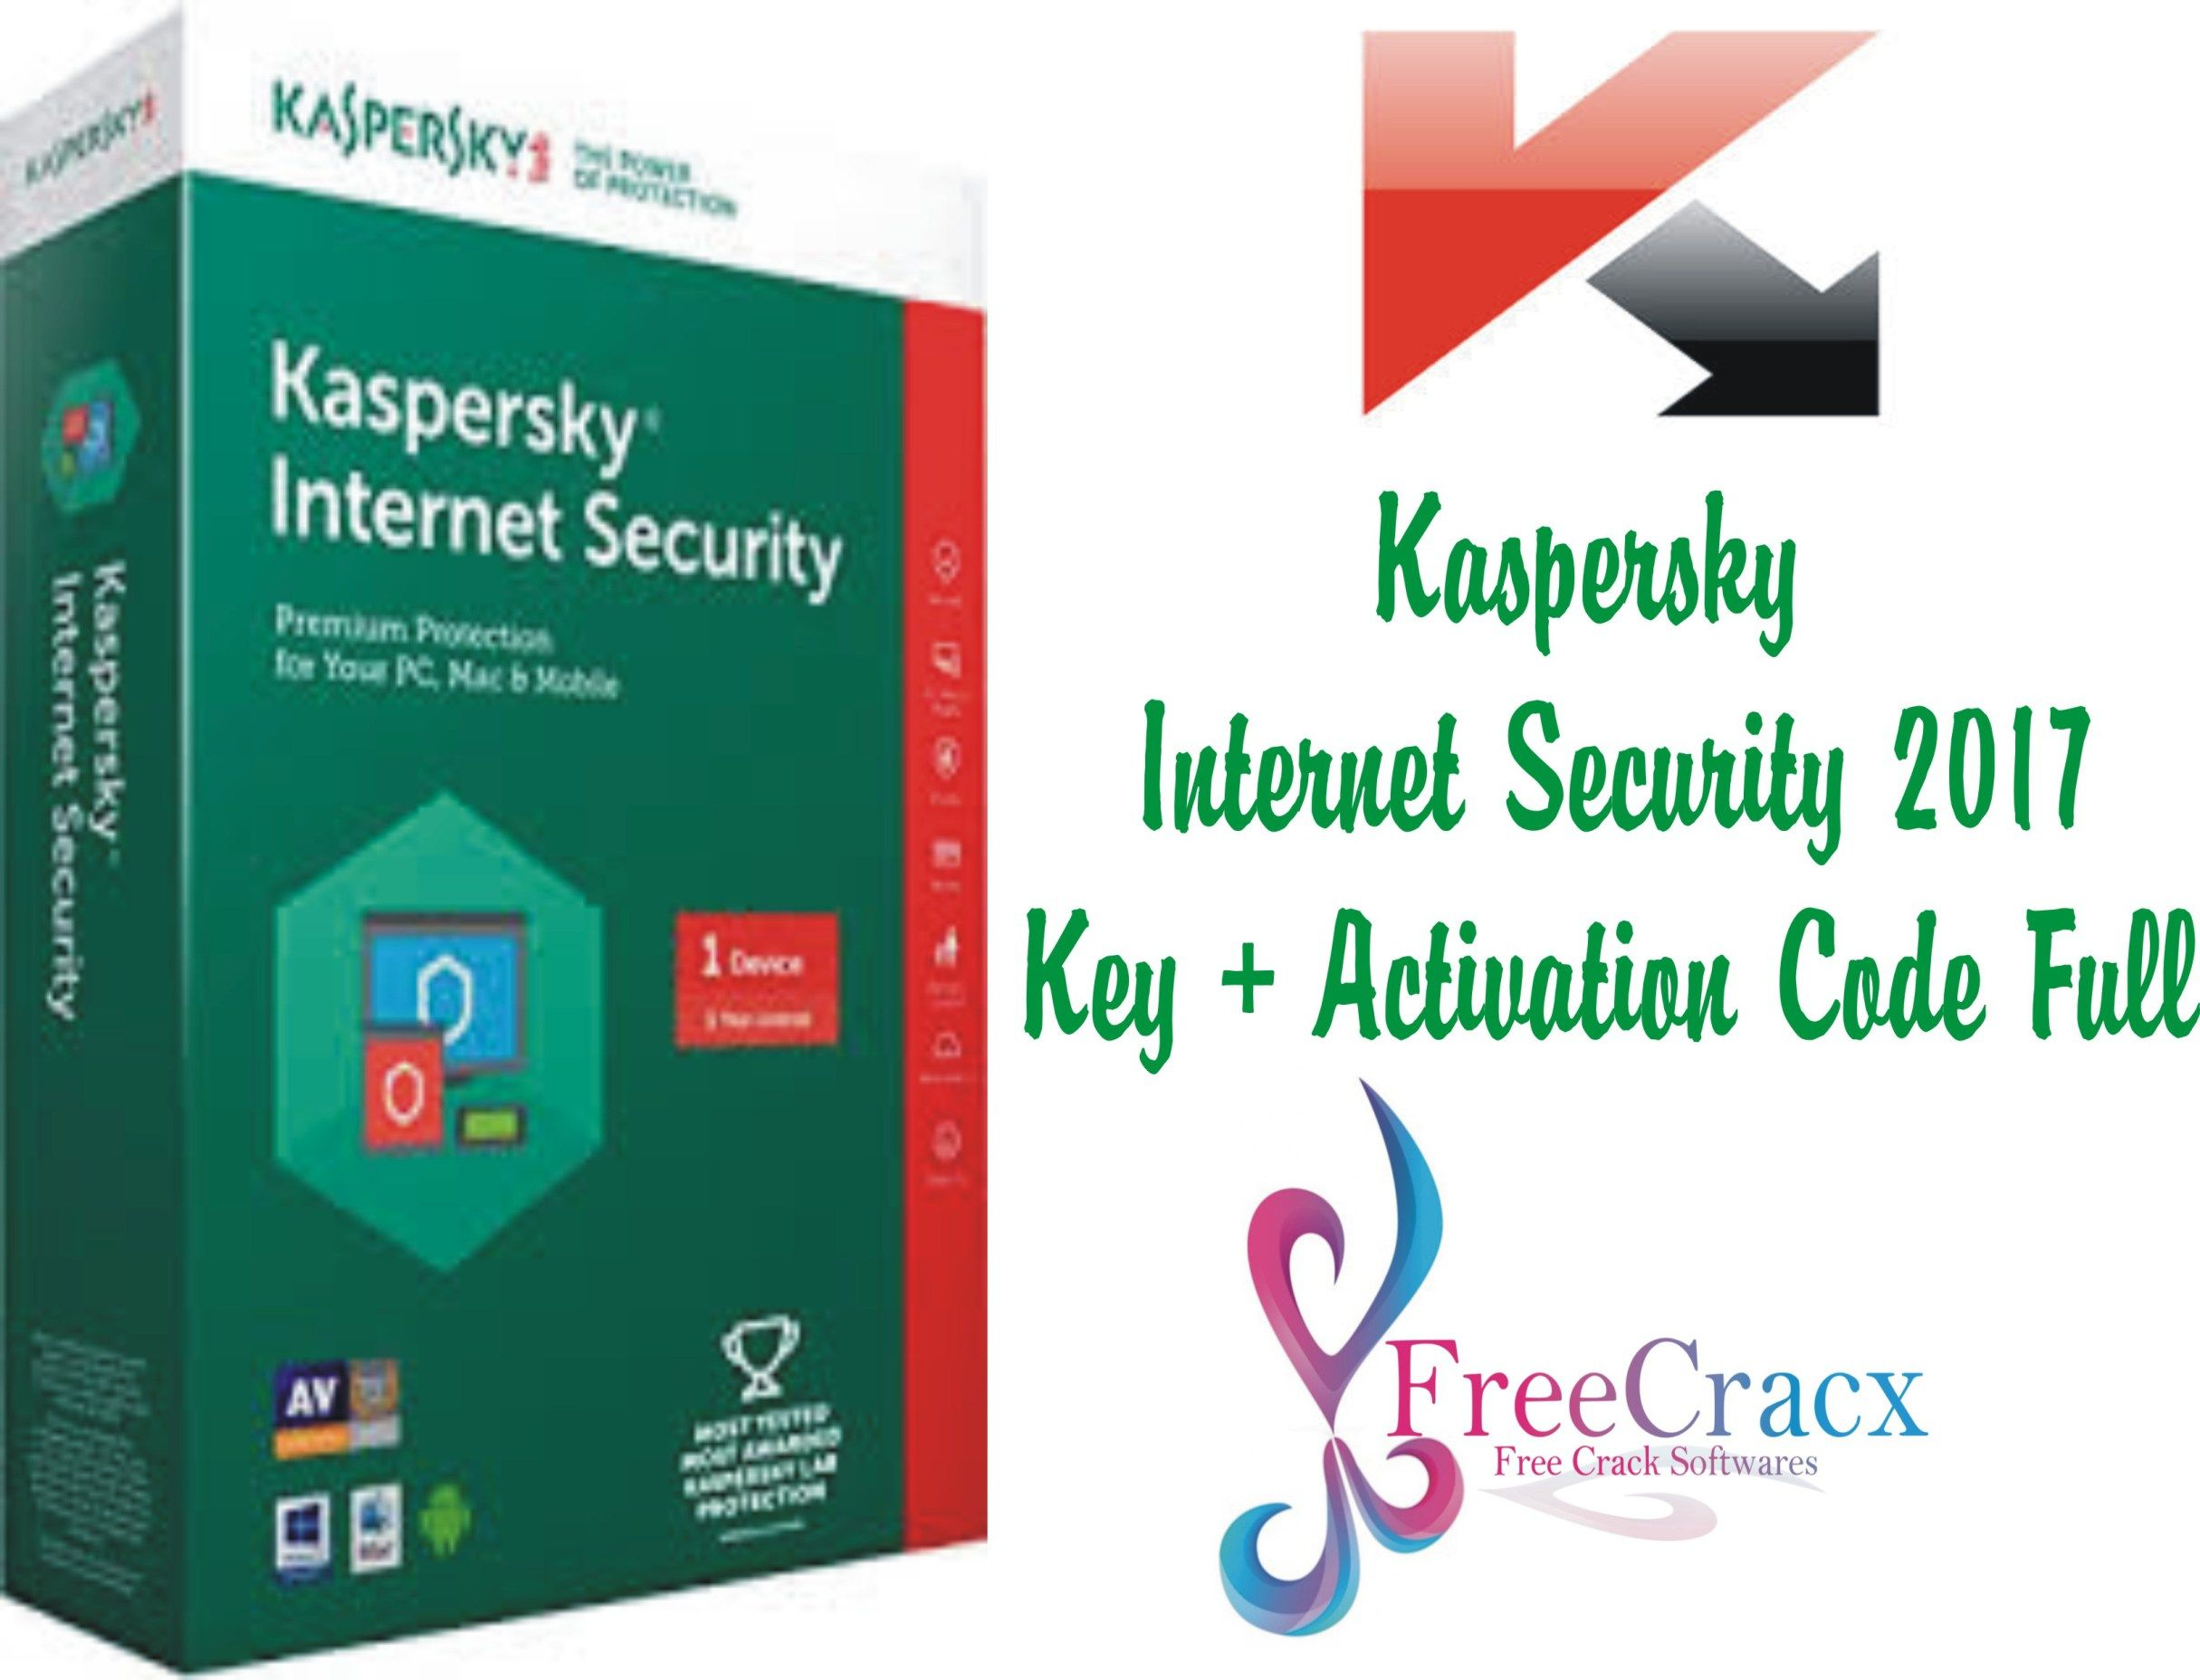 Kaspersky Internet Security 2017 Key Activation Code Full